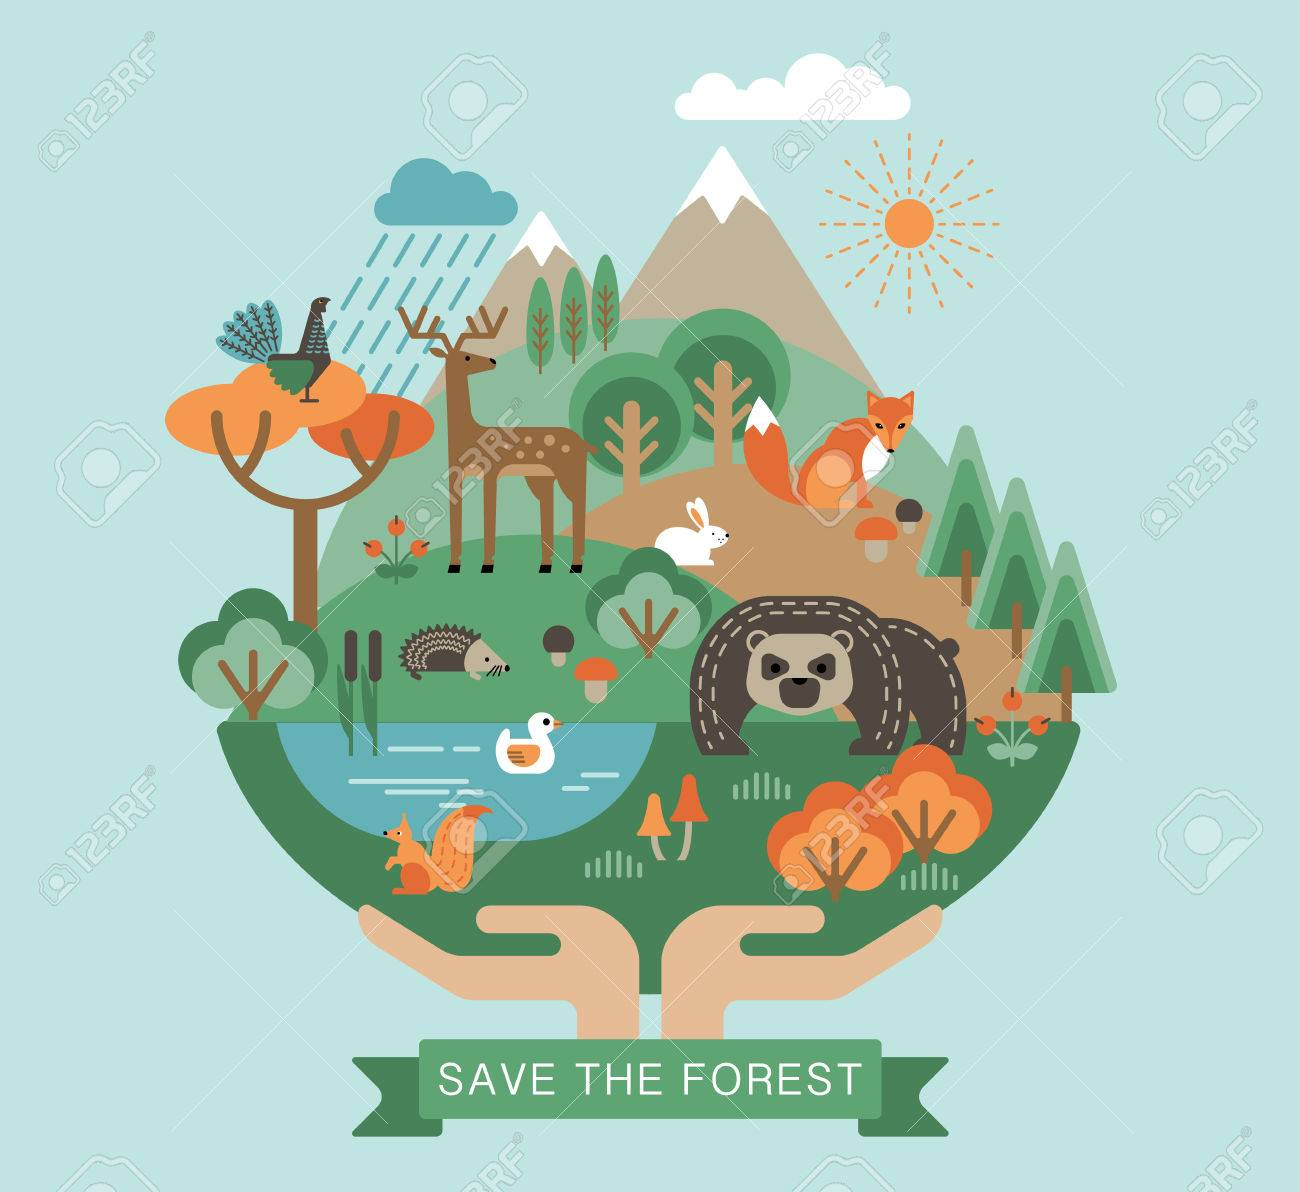 Vector illustration of protection nature. Forest flora and fauna. Trendy graphic style. - 48016189